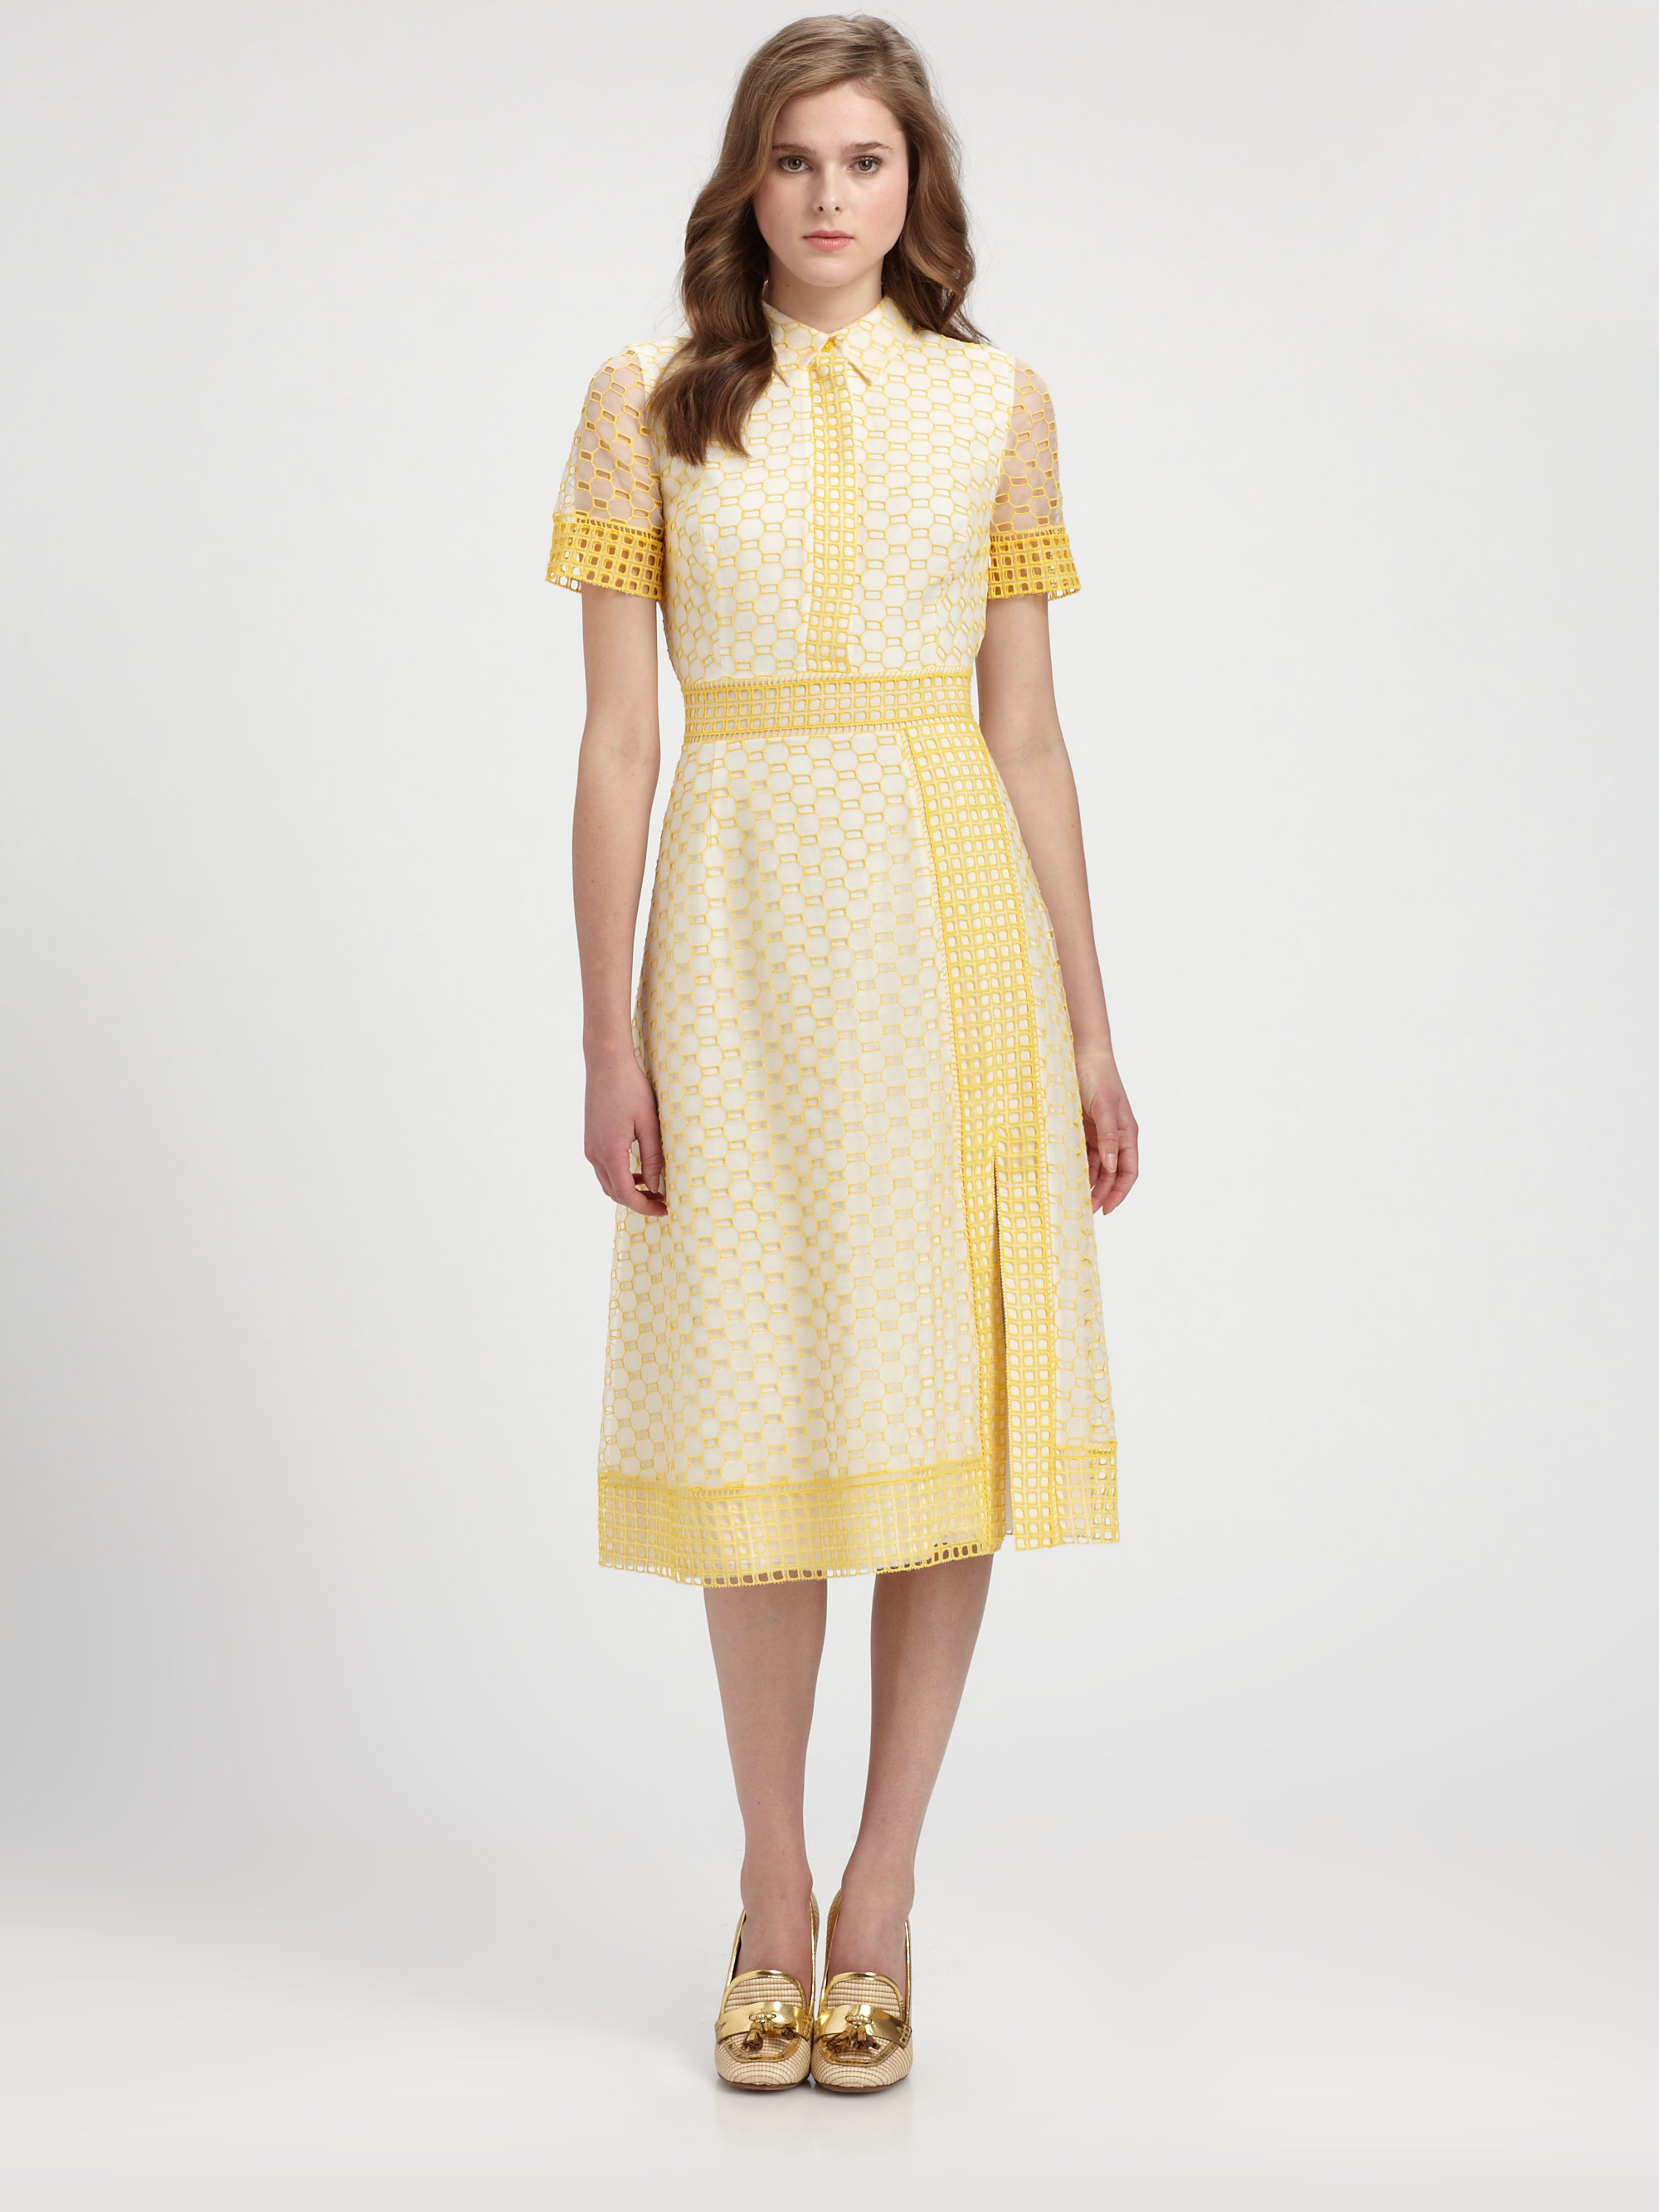 Lyst - Tory Burch Isidor Dress in Yellow